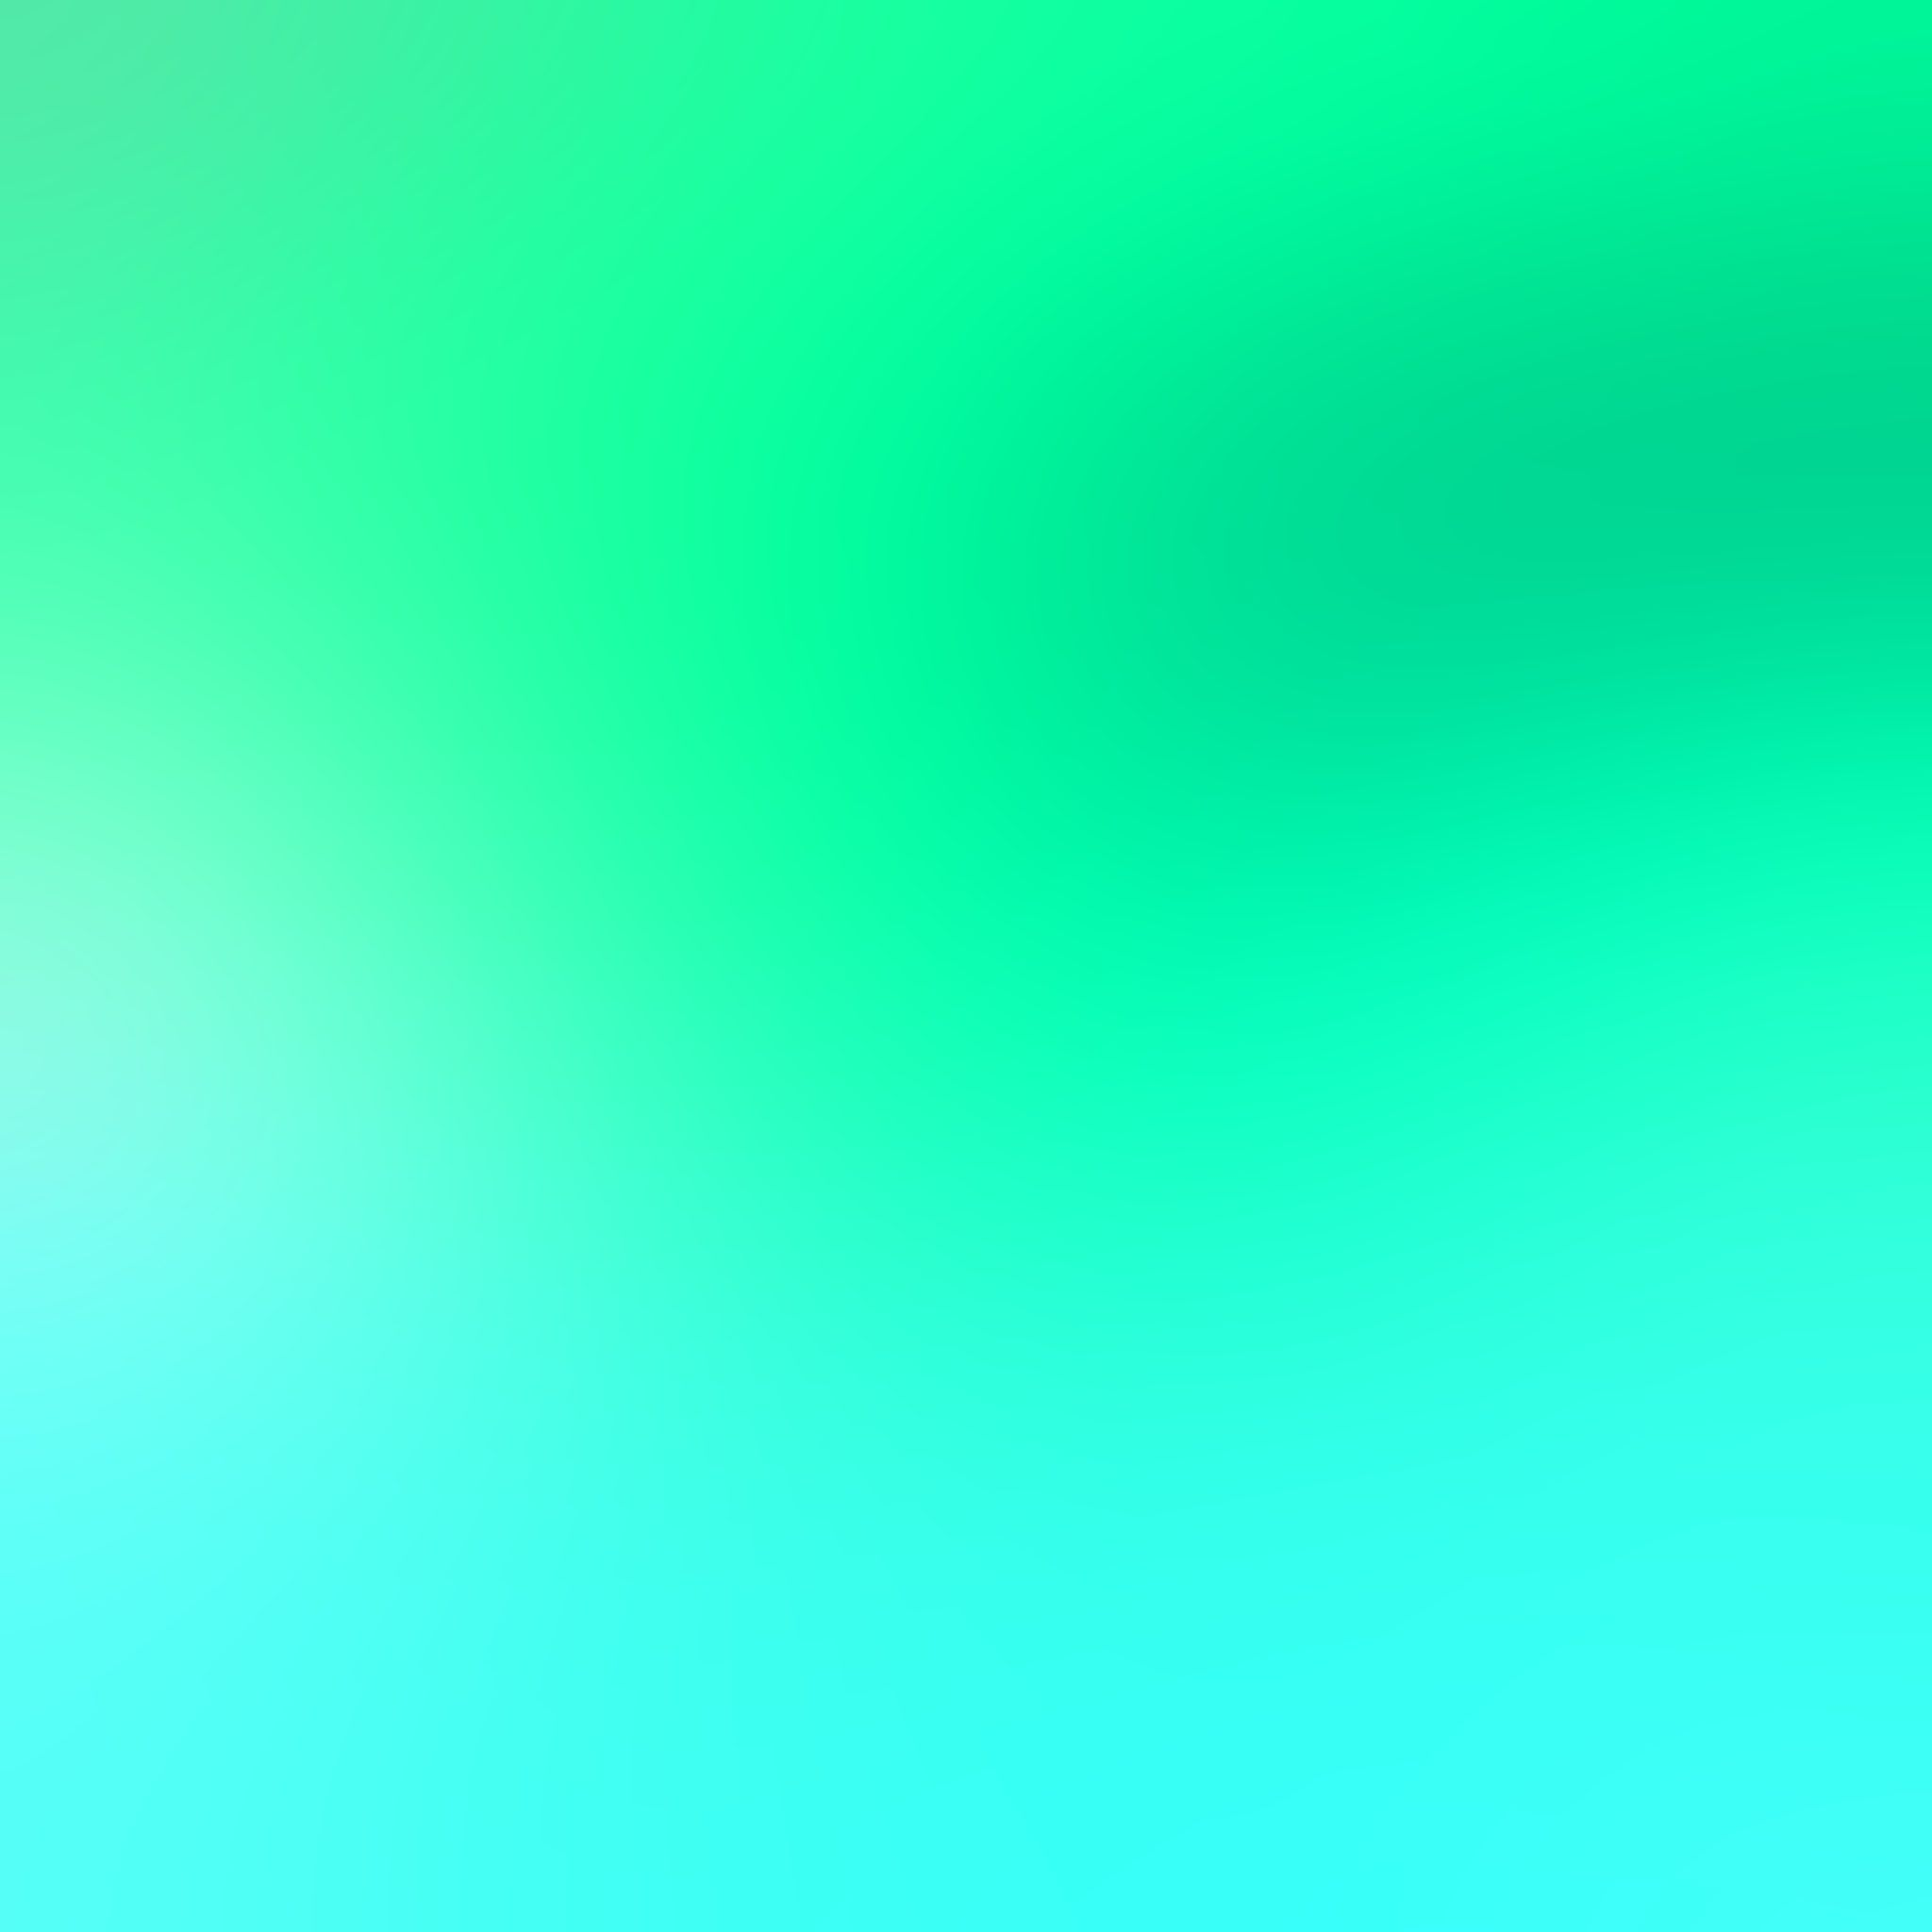 Neon Green Background (55+ images) |Bright Green Color Background